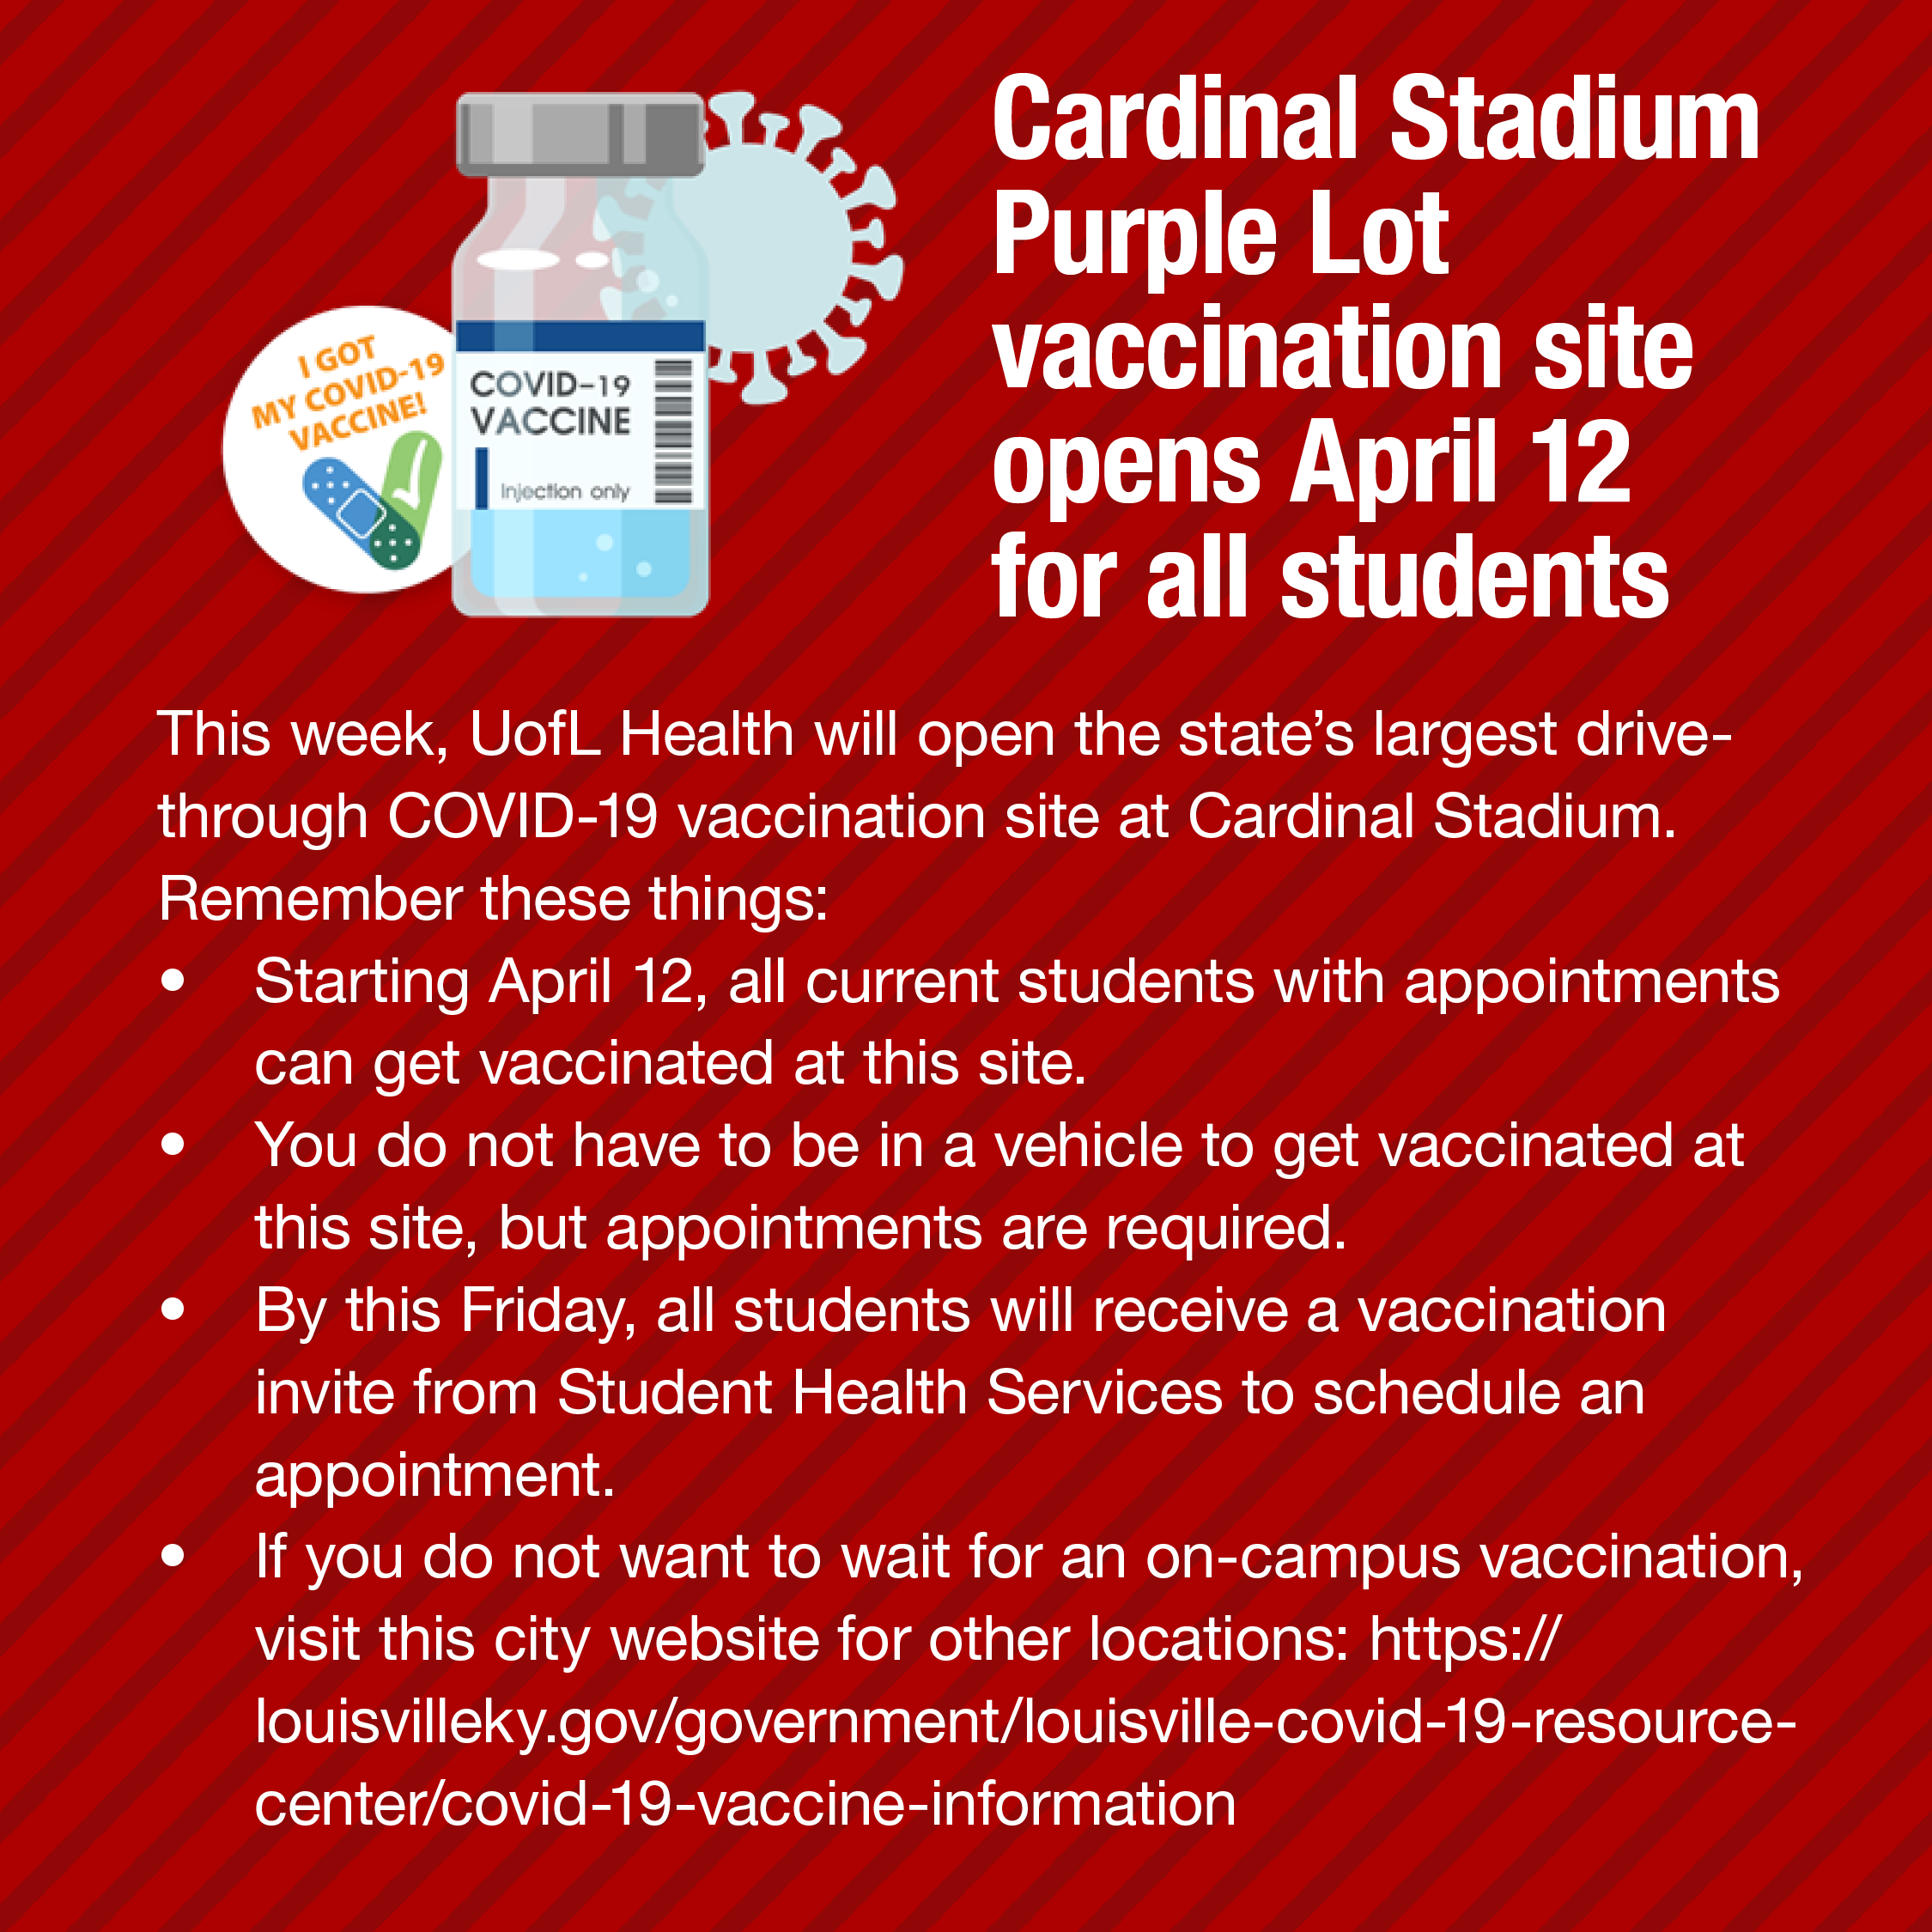 Cardinal Stadium Covid Vaccination Site for Students